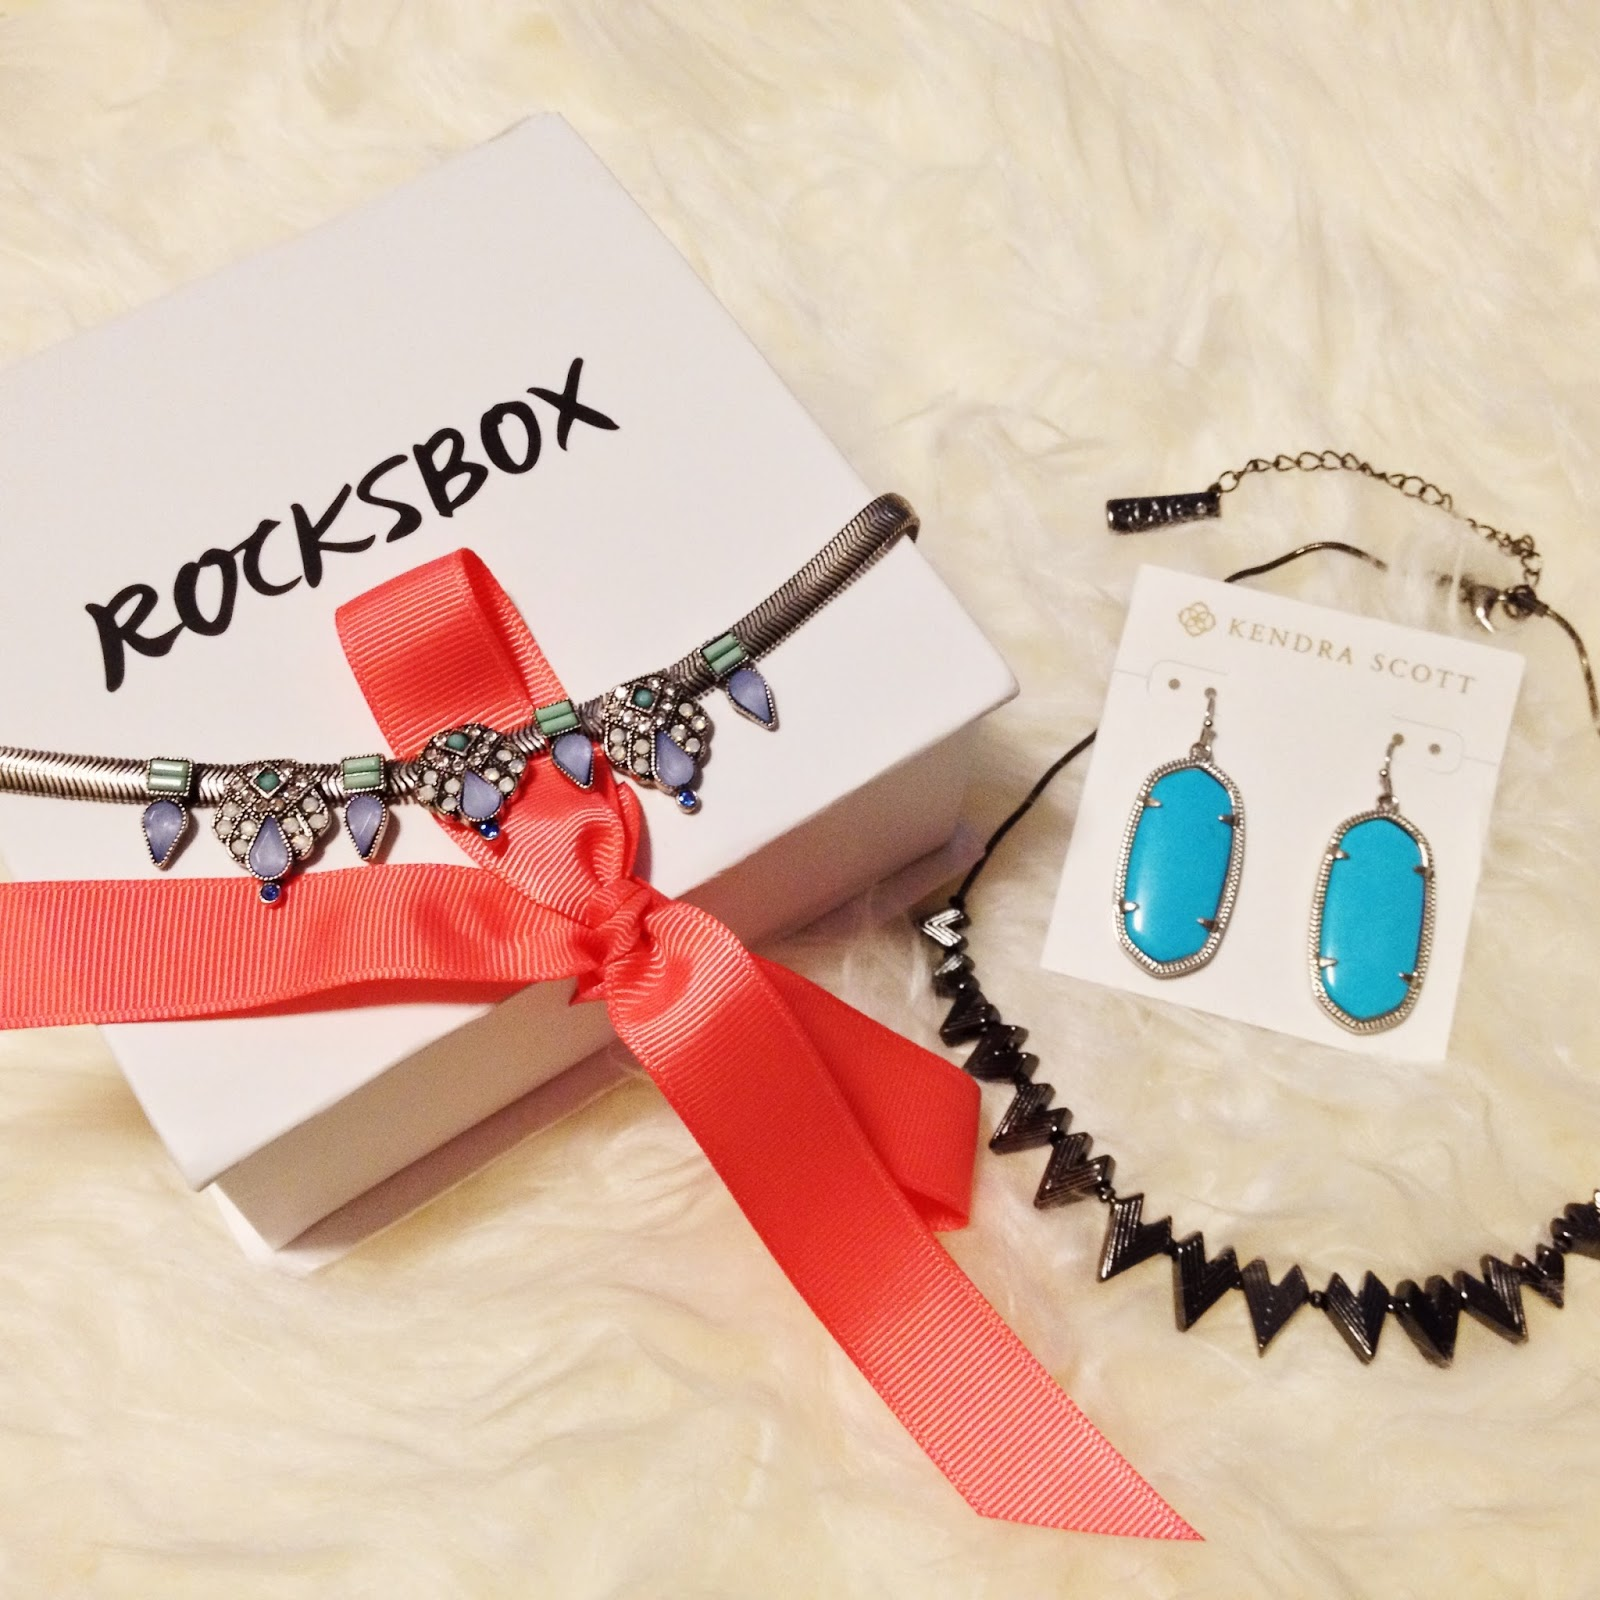 Rocksbox: Dual Necklaces!